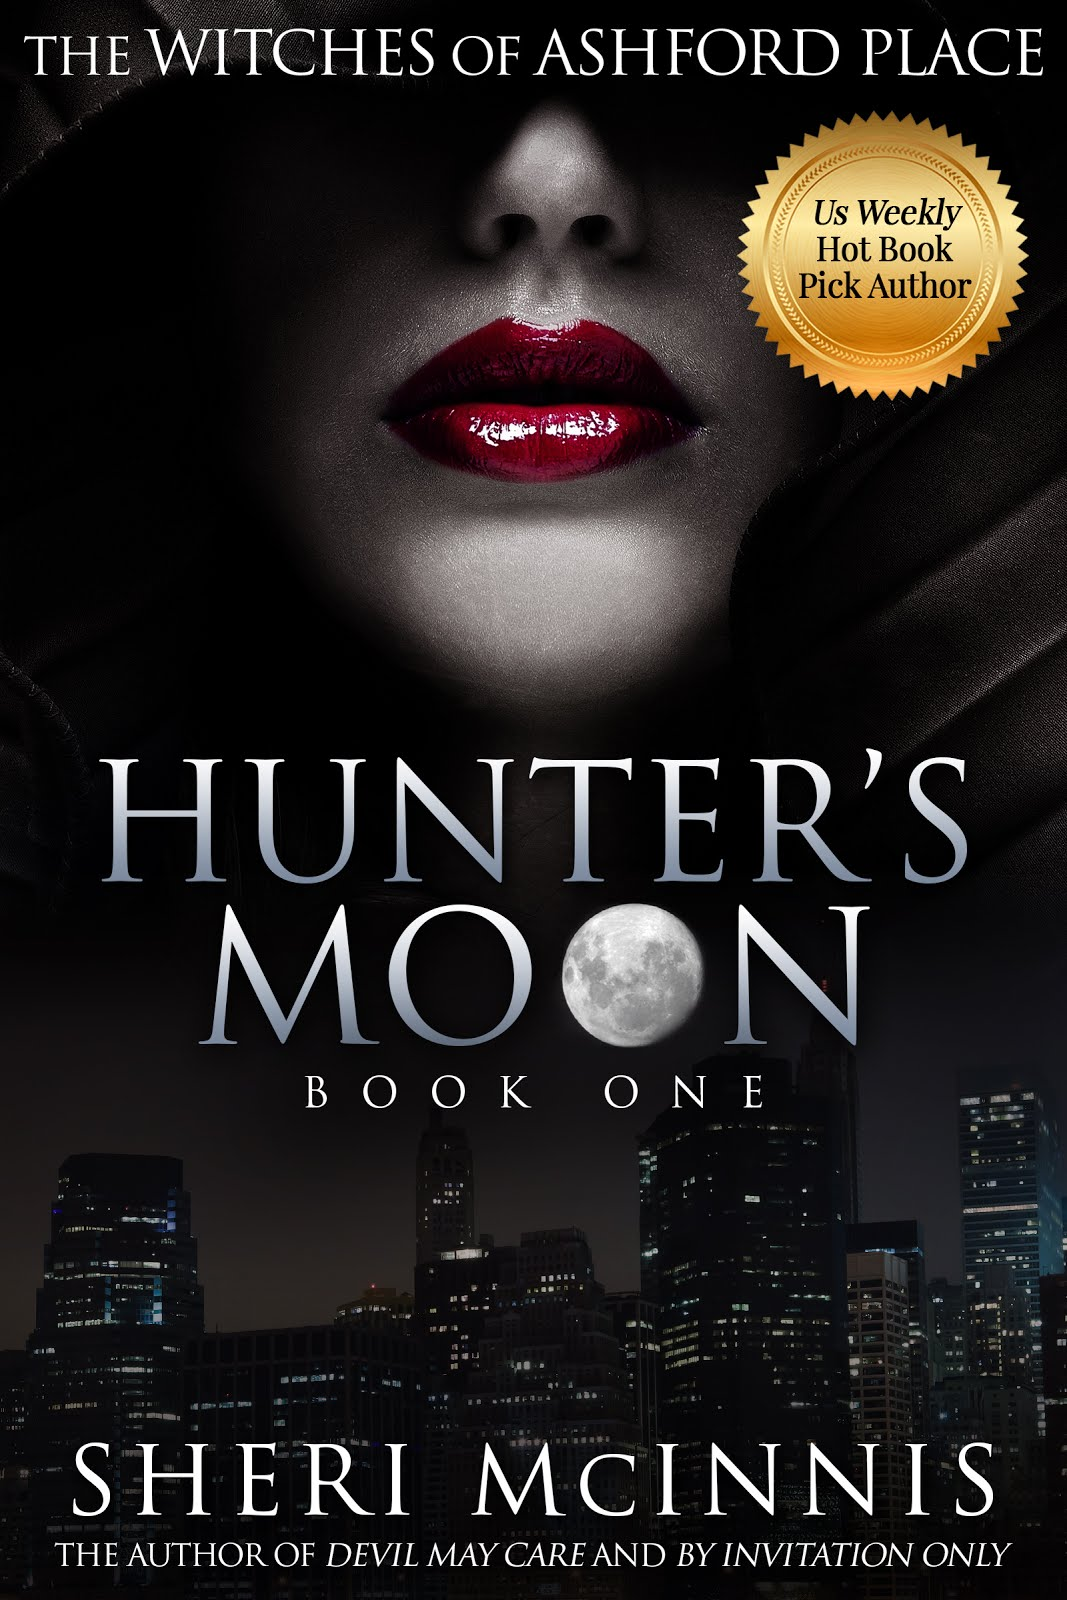 The Witches of Ashford Place: Hunter's Moon Book 1